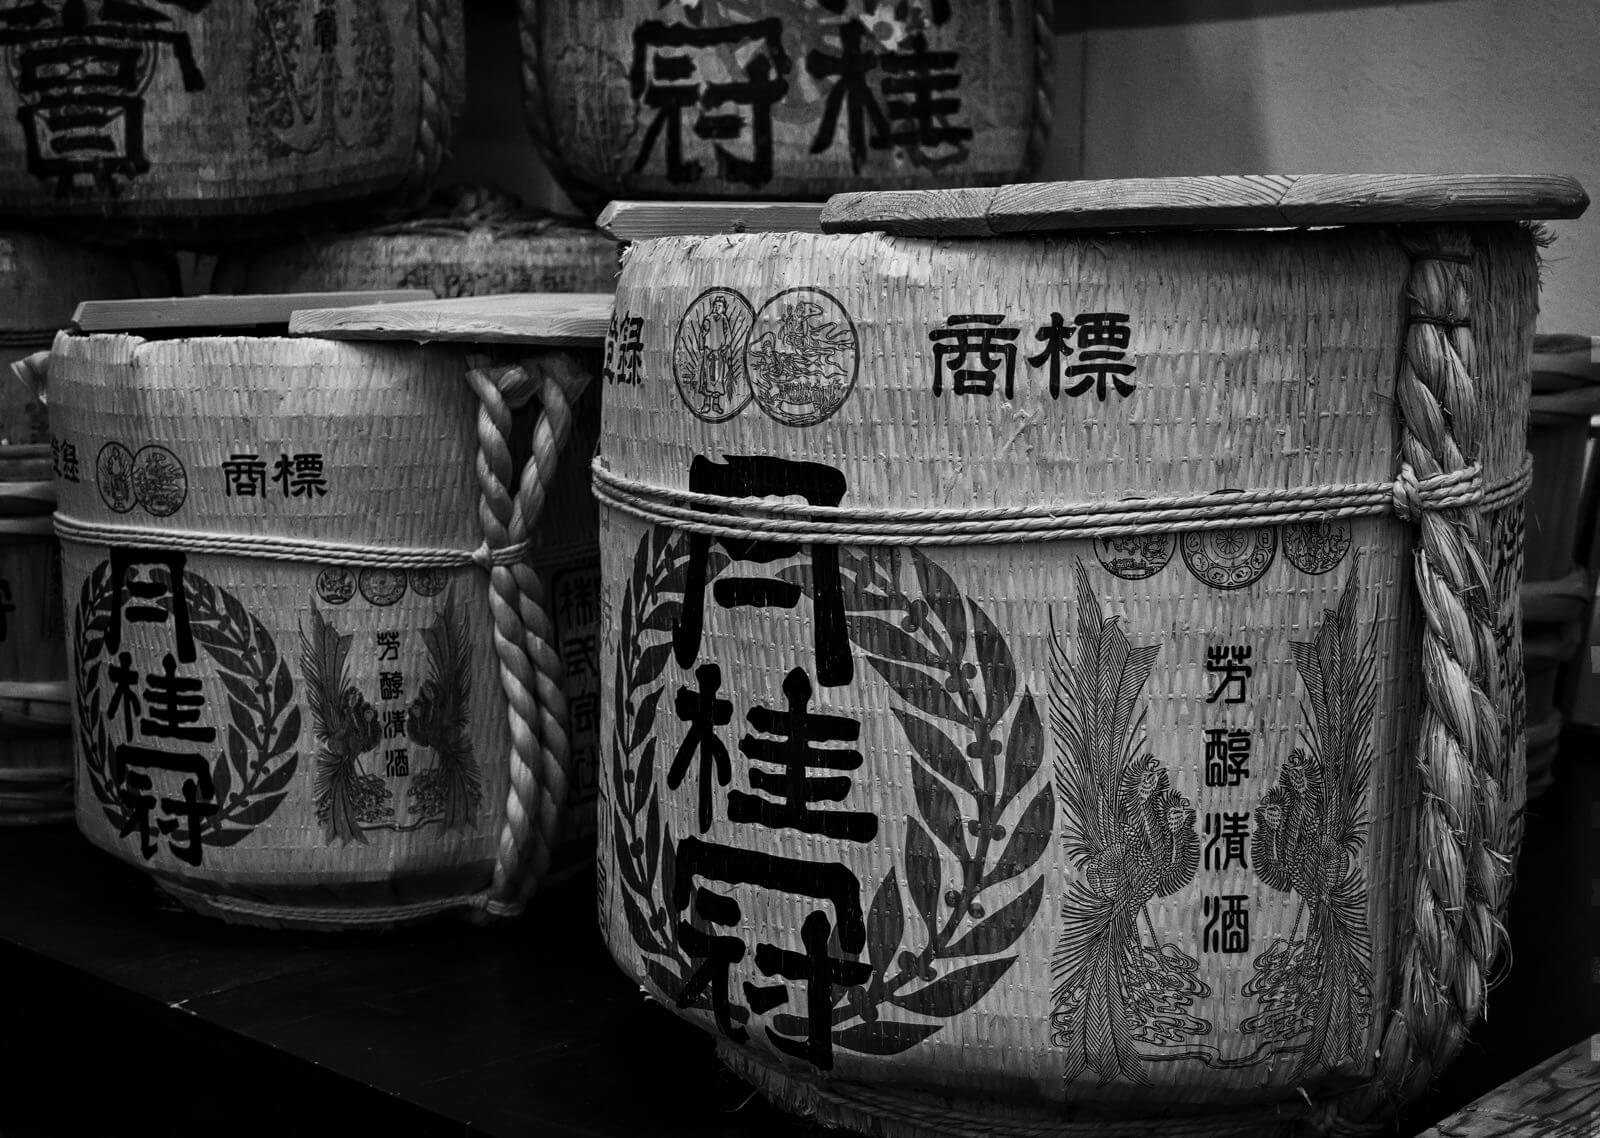 Sake barrels, Osaka, Japan - Photo by Zdenek Sindelar of CuriousZed Photography